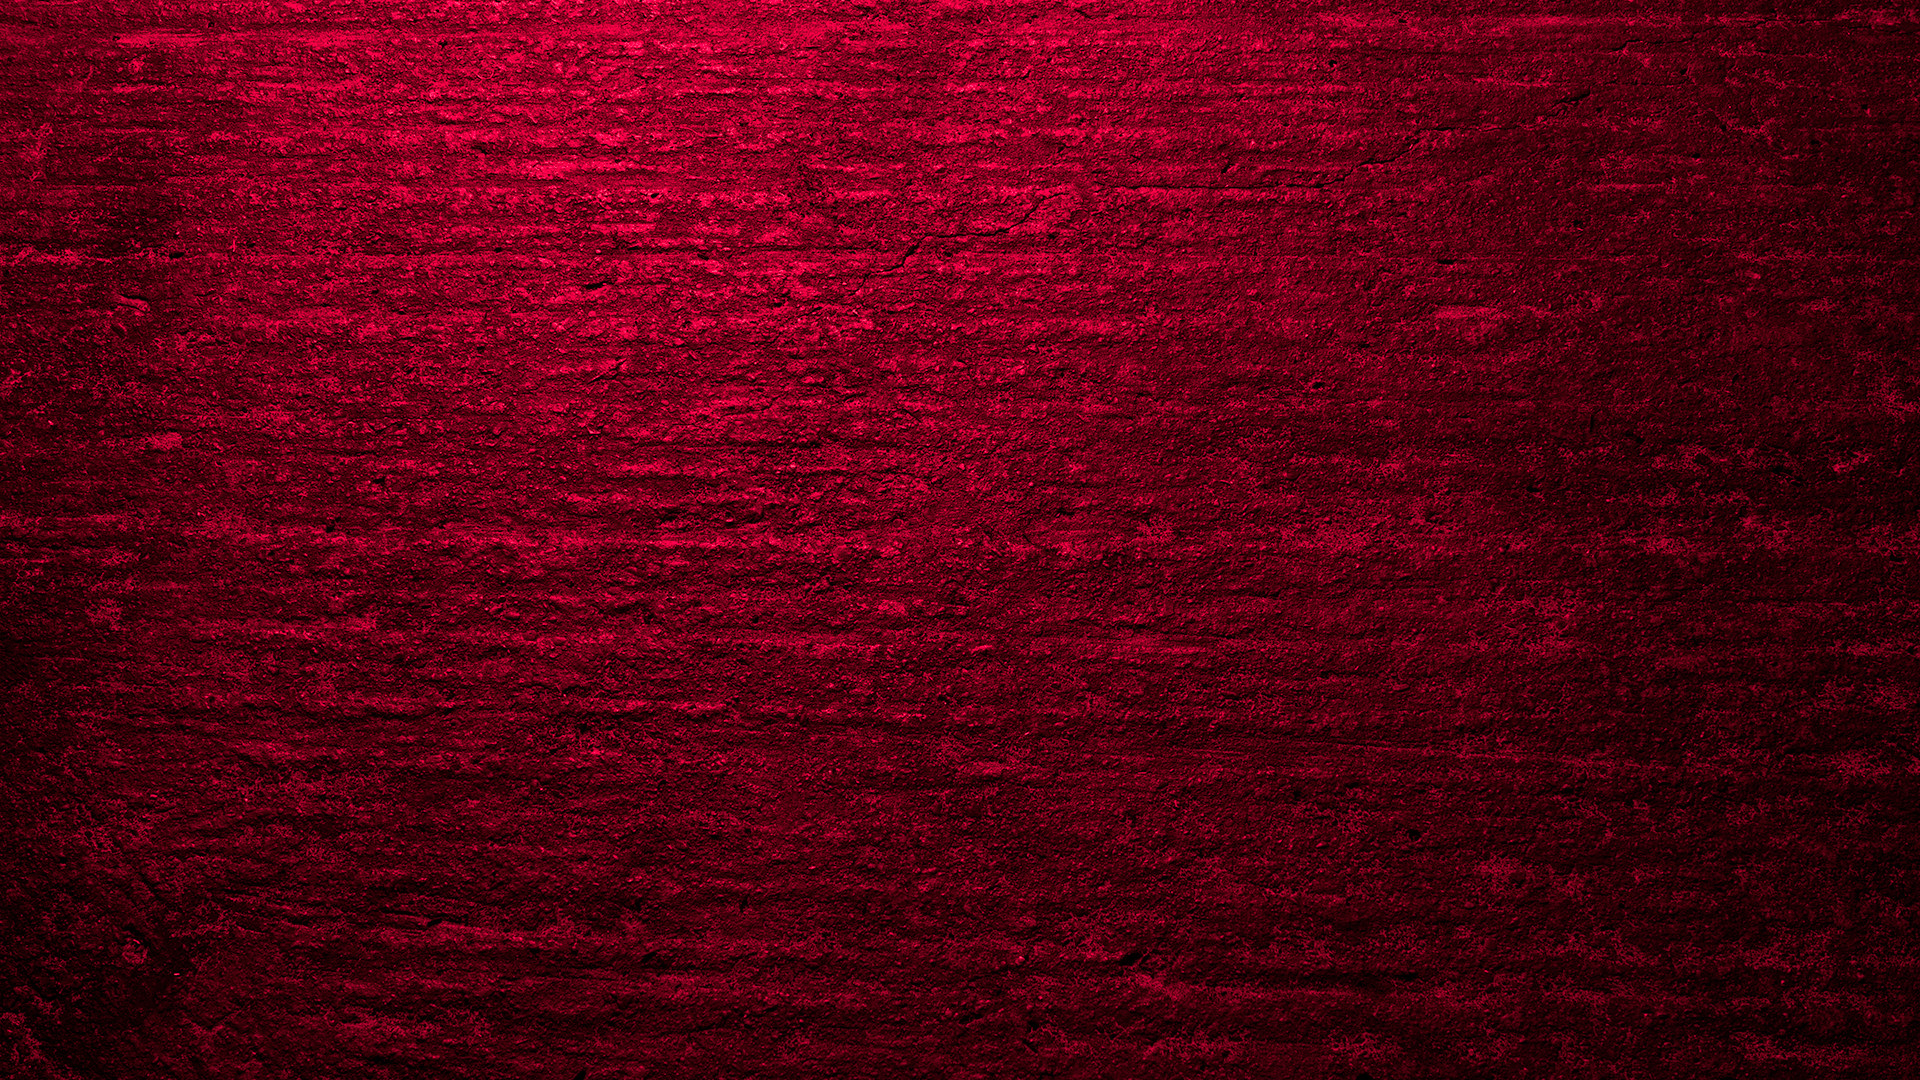 Red Grunge Concrete Texture HD · Red Grunge Concrete Texture HD free  powerpoint background